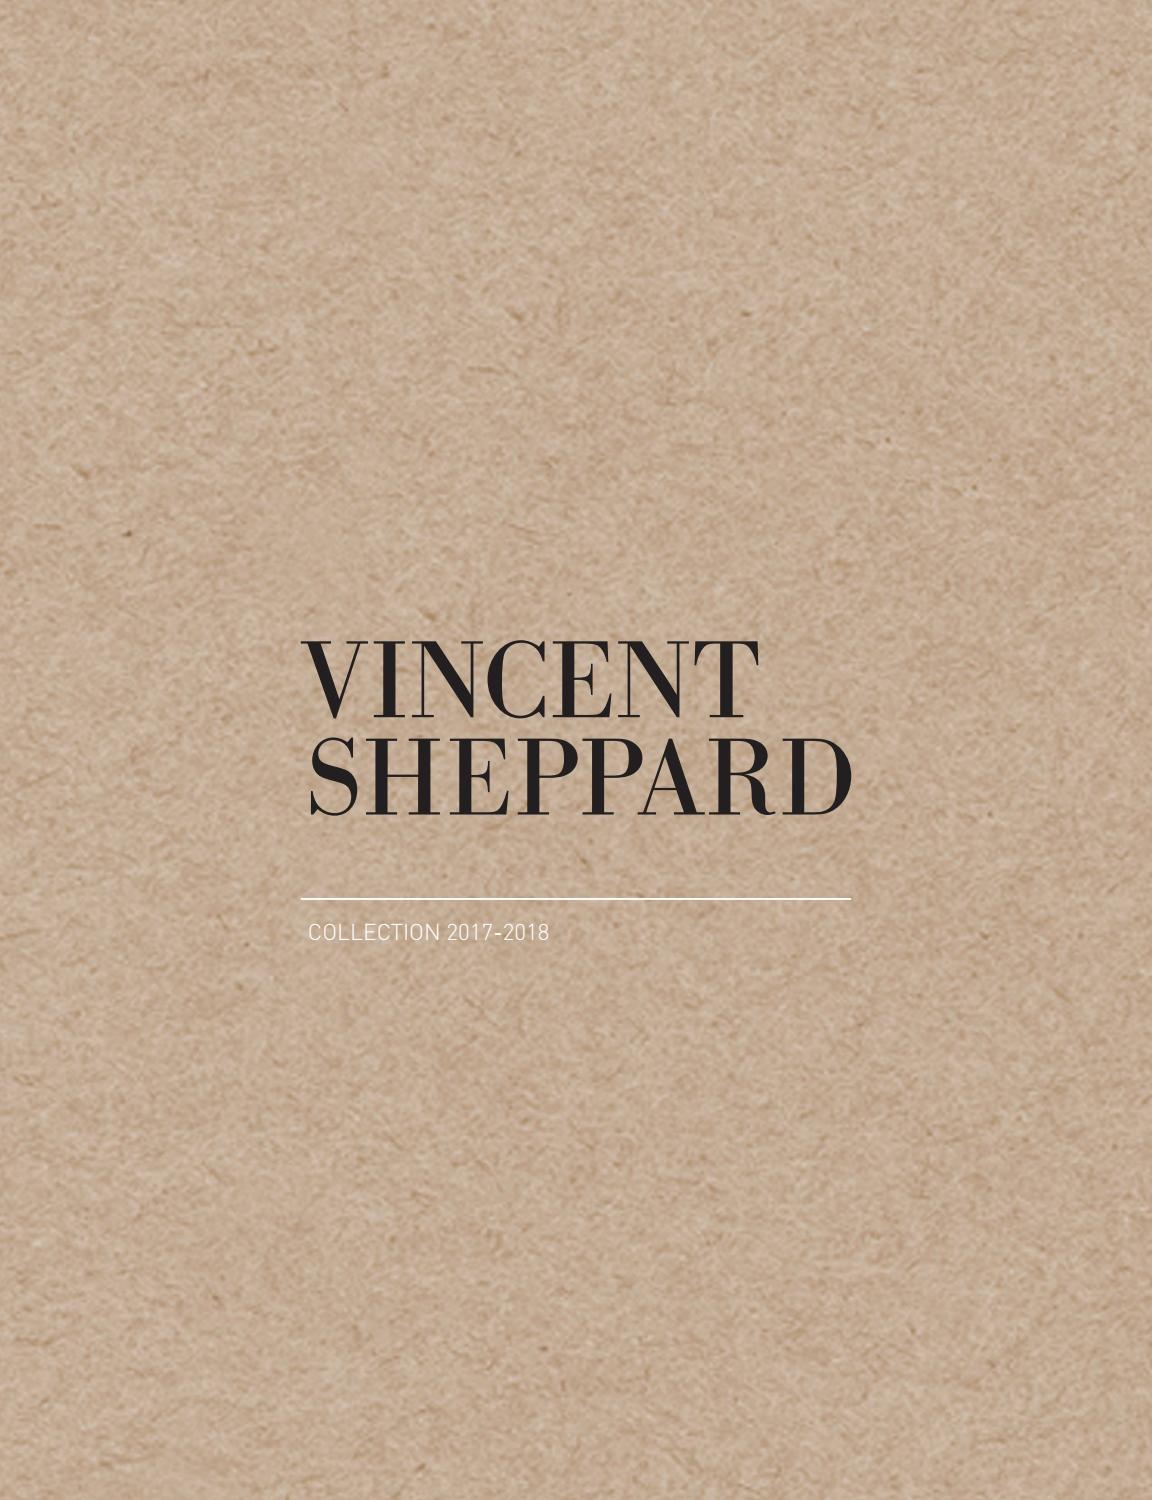 Vincent Sheppard Indoor Catalogue 2017 2018 Vincent Sheppard Atelier N 7 By